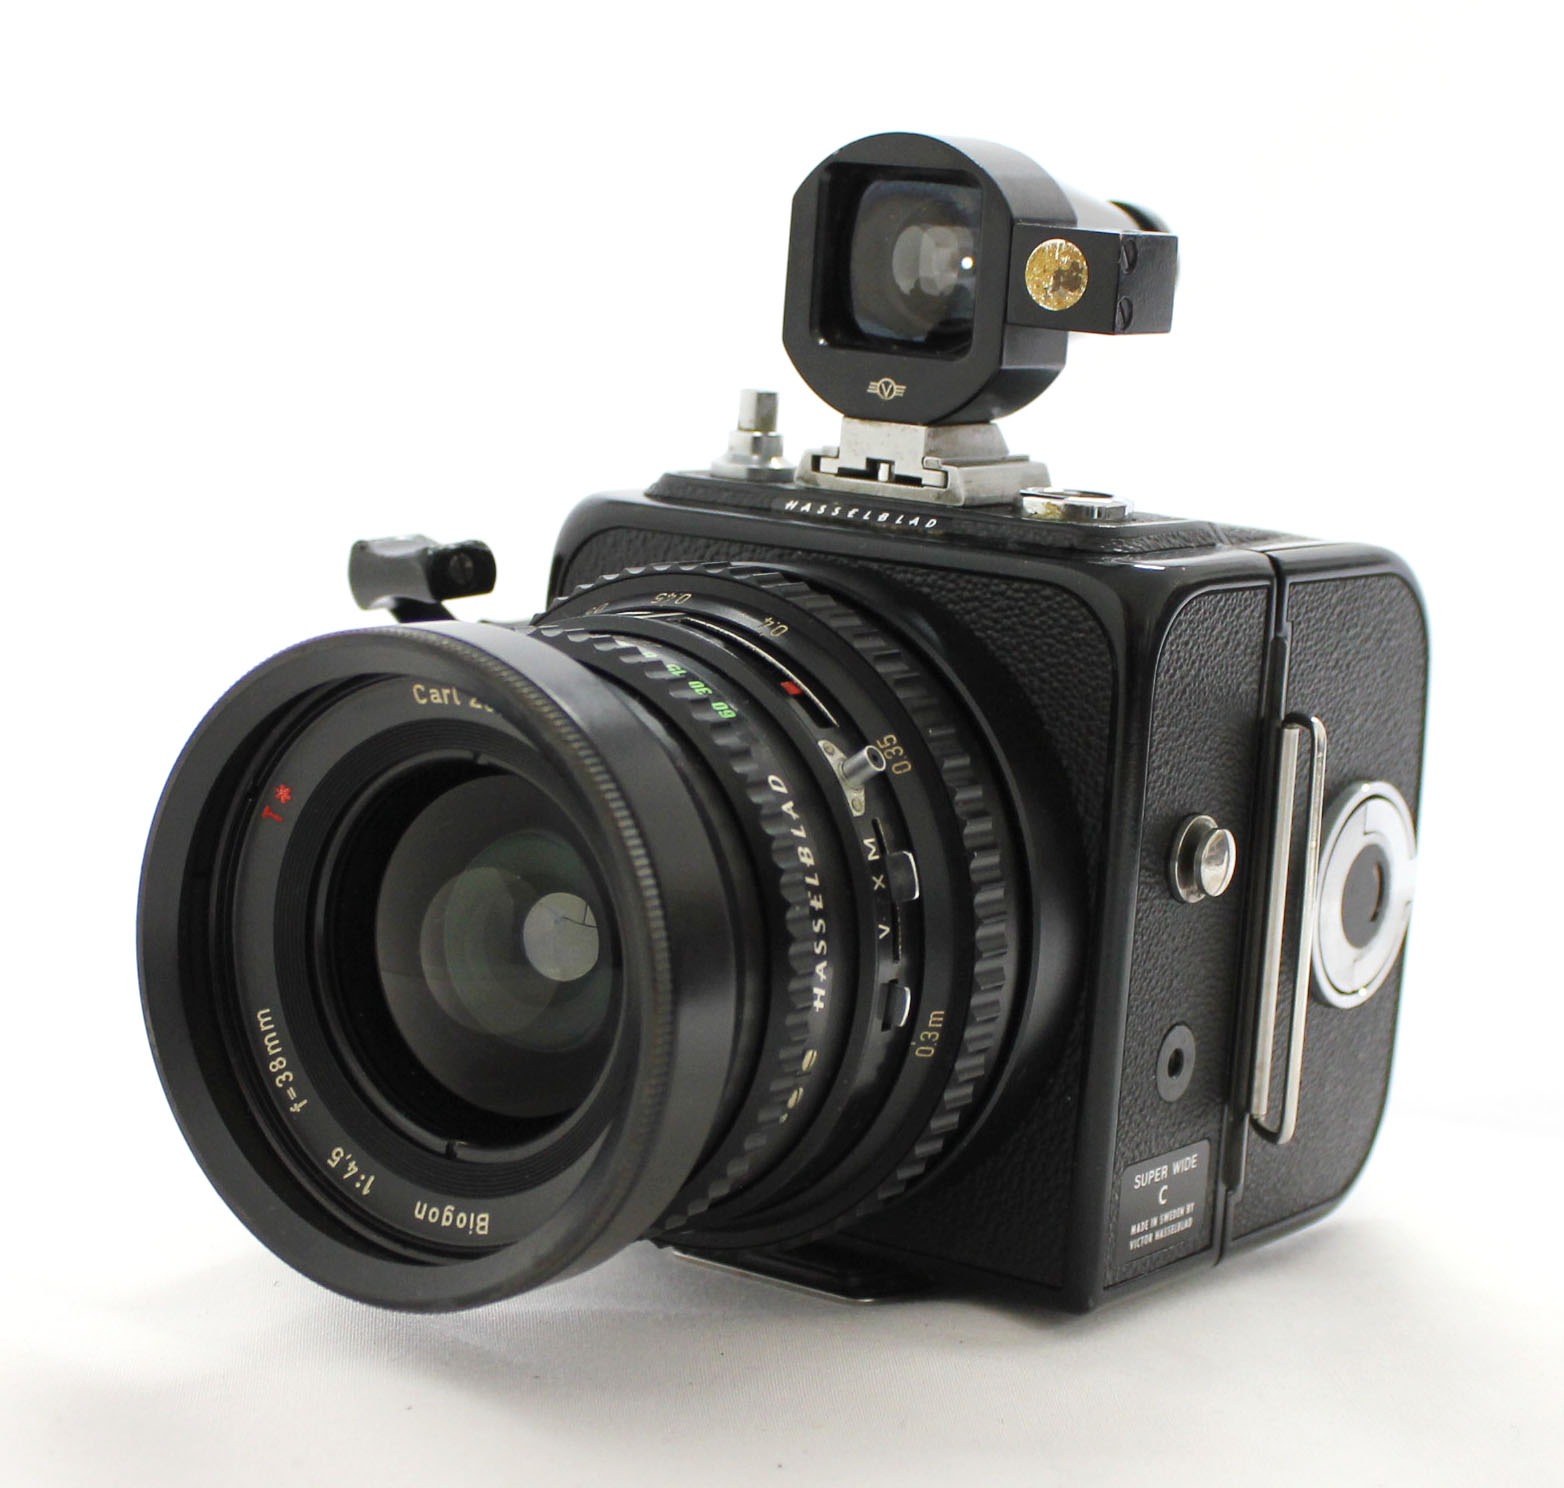 Japan Used Camera Shop | [Excellent+++] Hasselblad SWC Super Wide C w/ Biogon 38mm F/4.5 T* Black from Japan